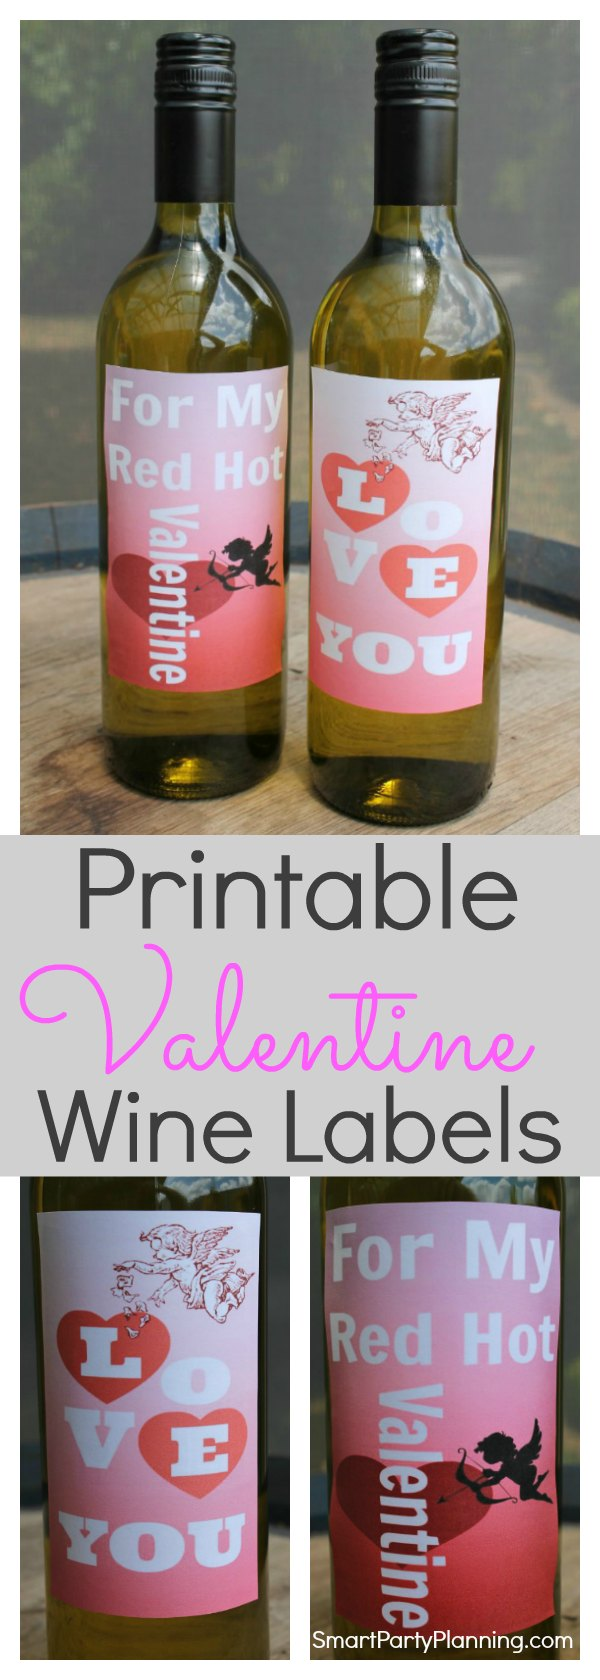 These Printable Valentine wine labelsare the perfect way to share the love this Valentine's day. Use as a Valentine's gift, take to a picnic, or bring the bottle out at a romantic dinner for two. Either way, the extra special touch will be sure to highlight the love this Valentine's.